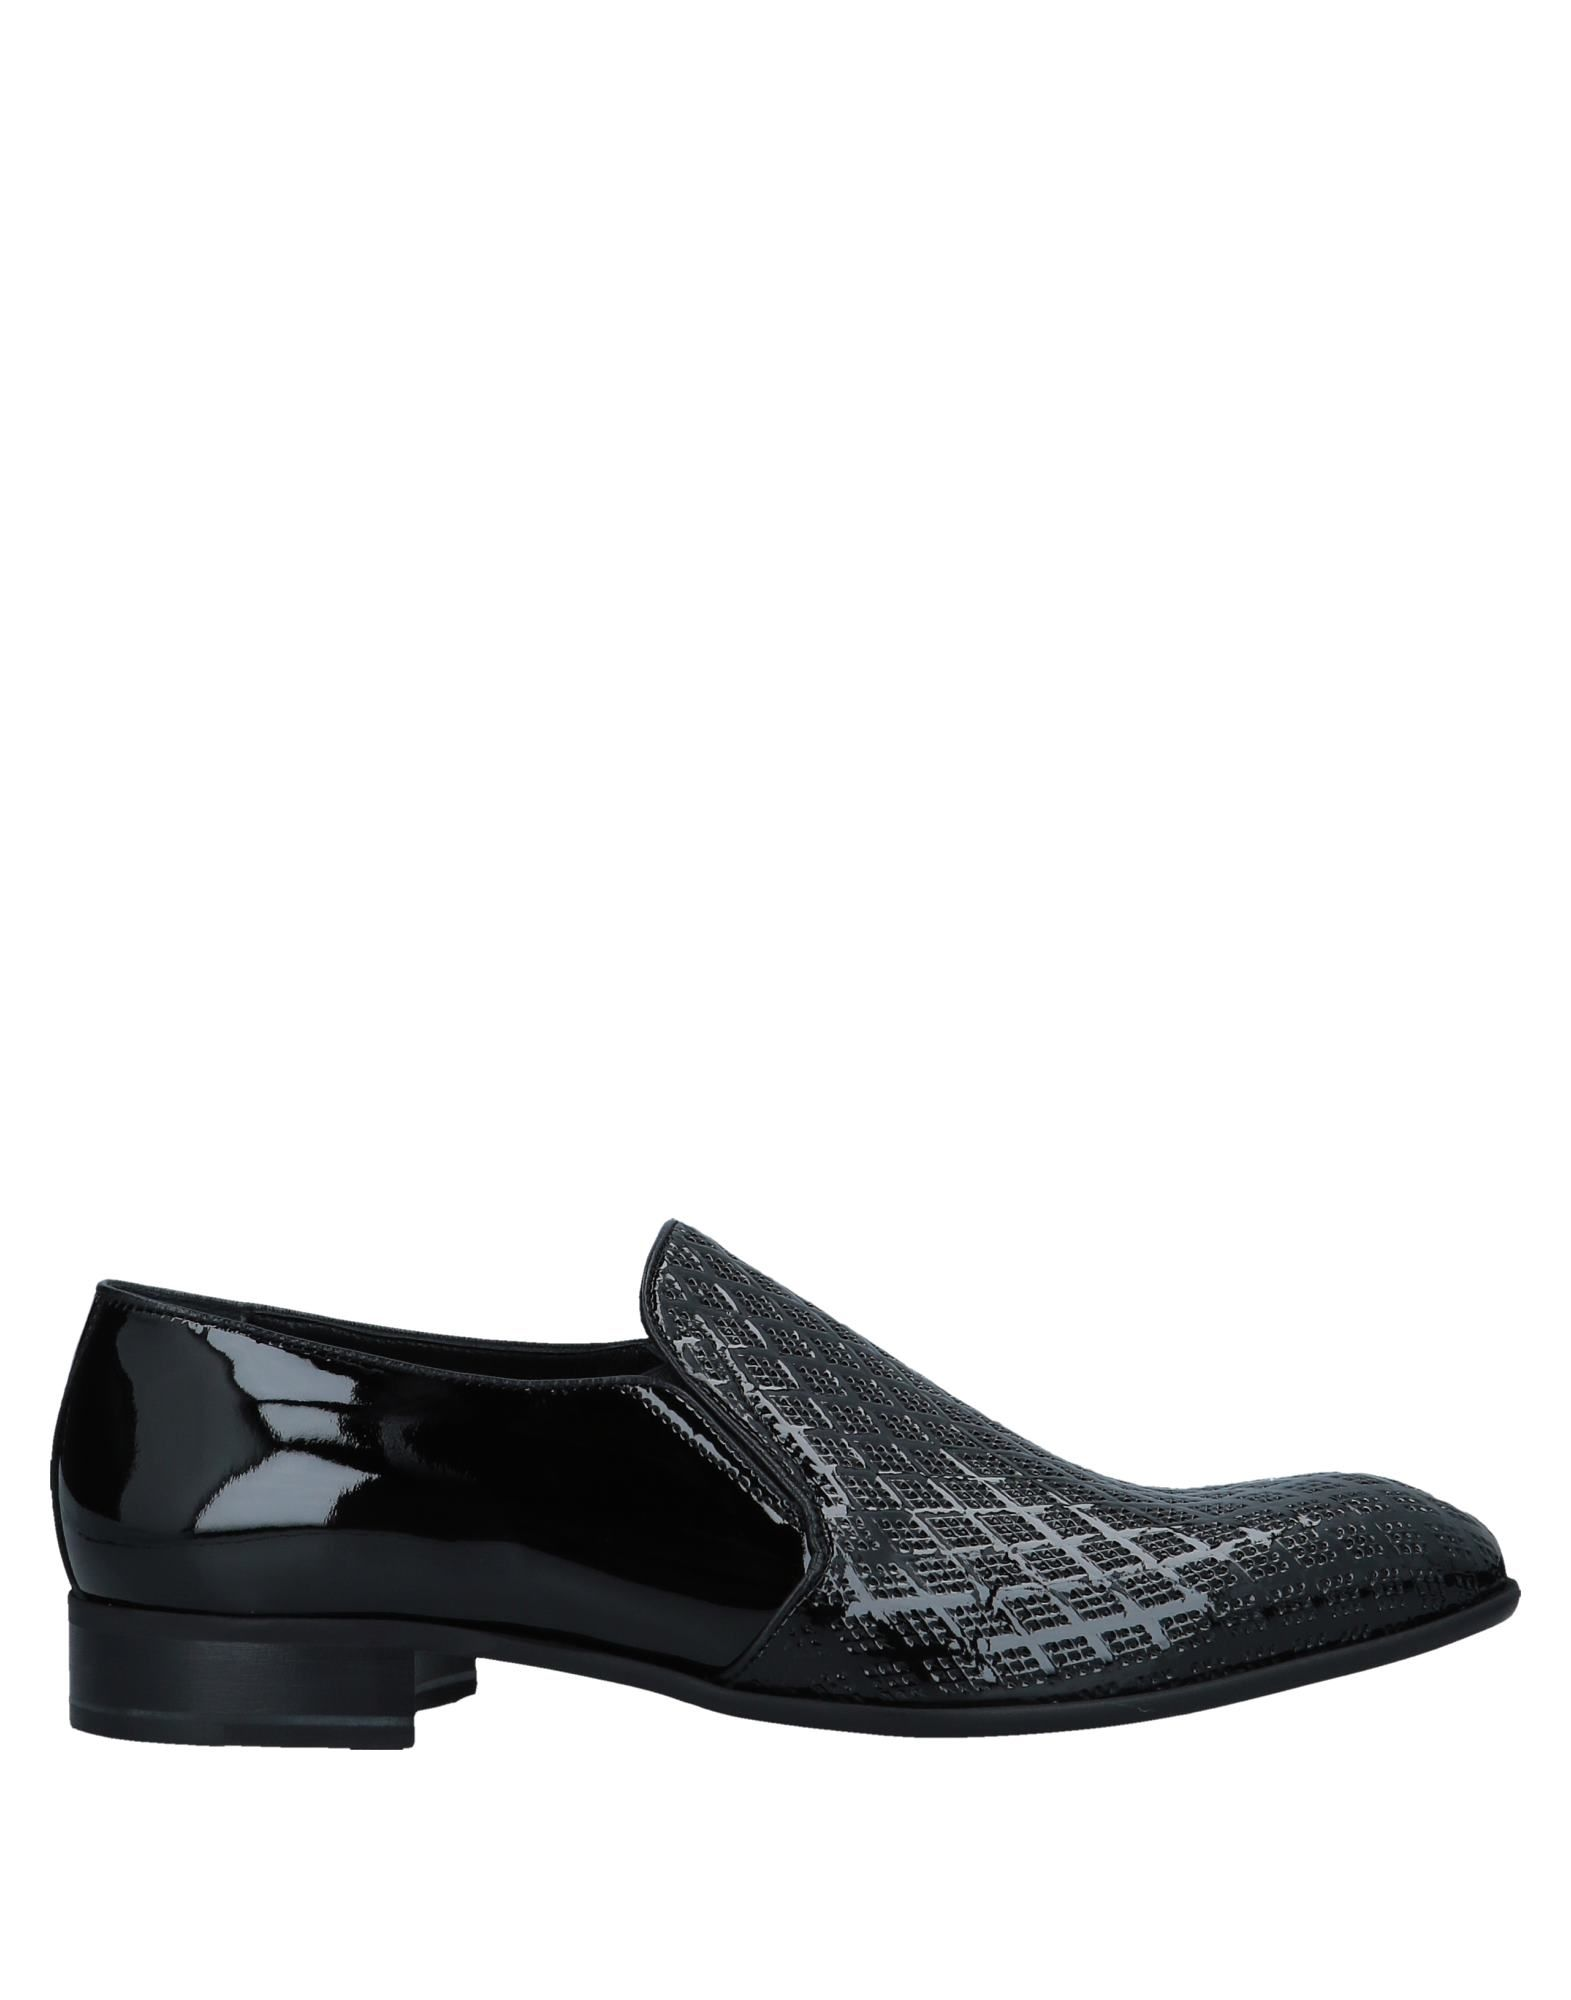 Fratelli Perez Loafers - Men Fratelli Perez Loafers Loafers Loafers online on  Australia - 11563524SL 34e60b